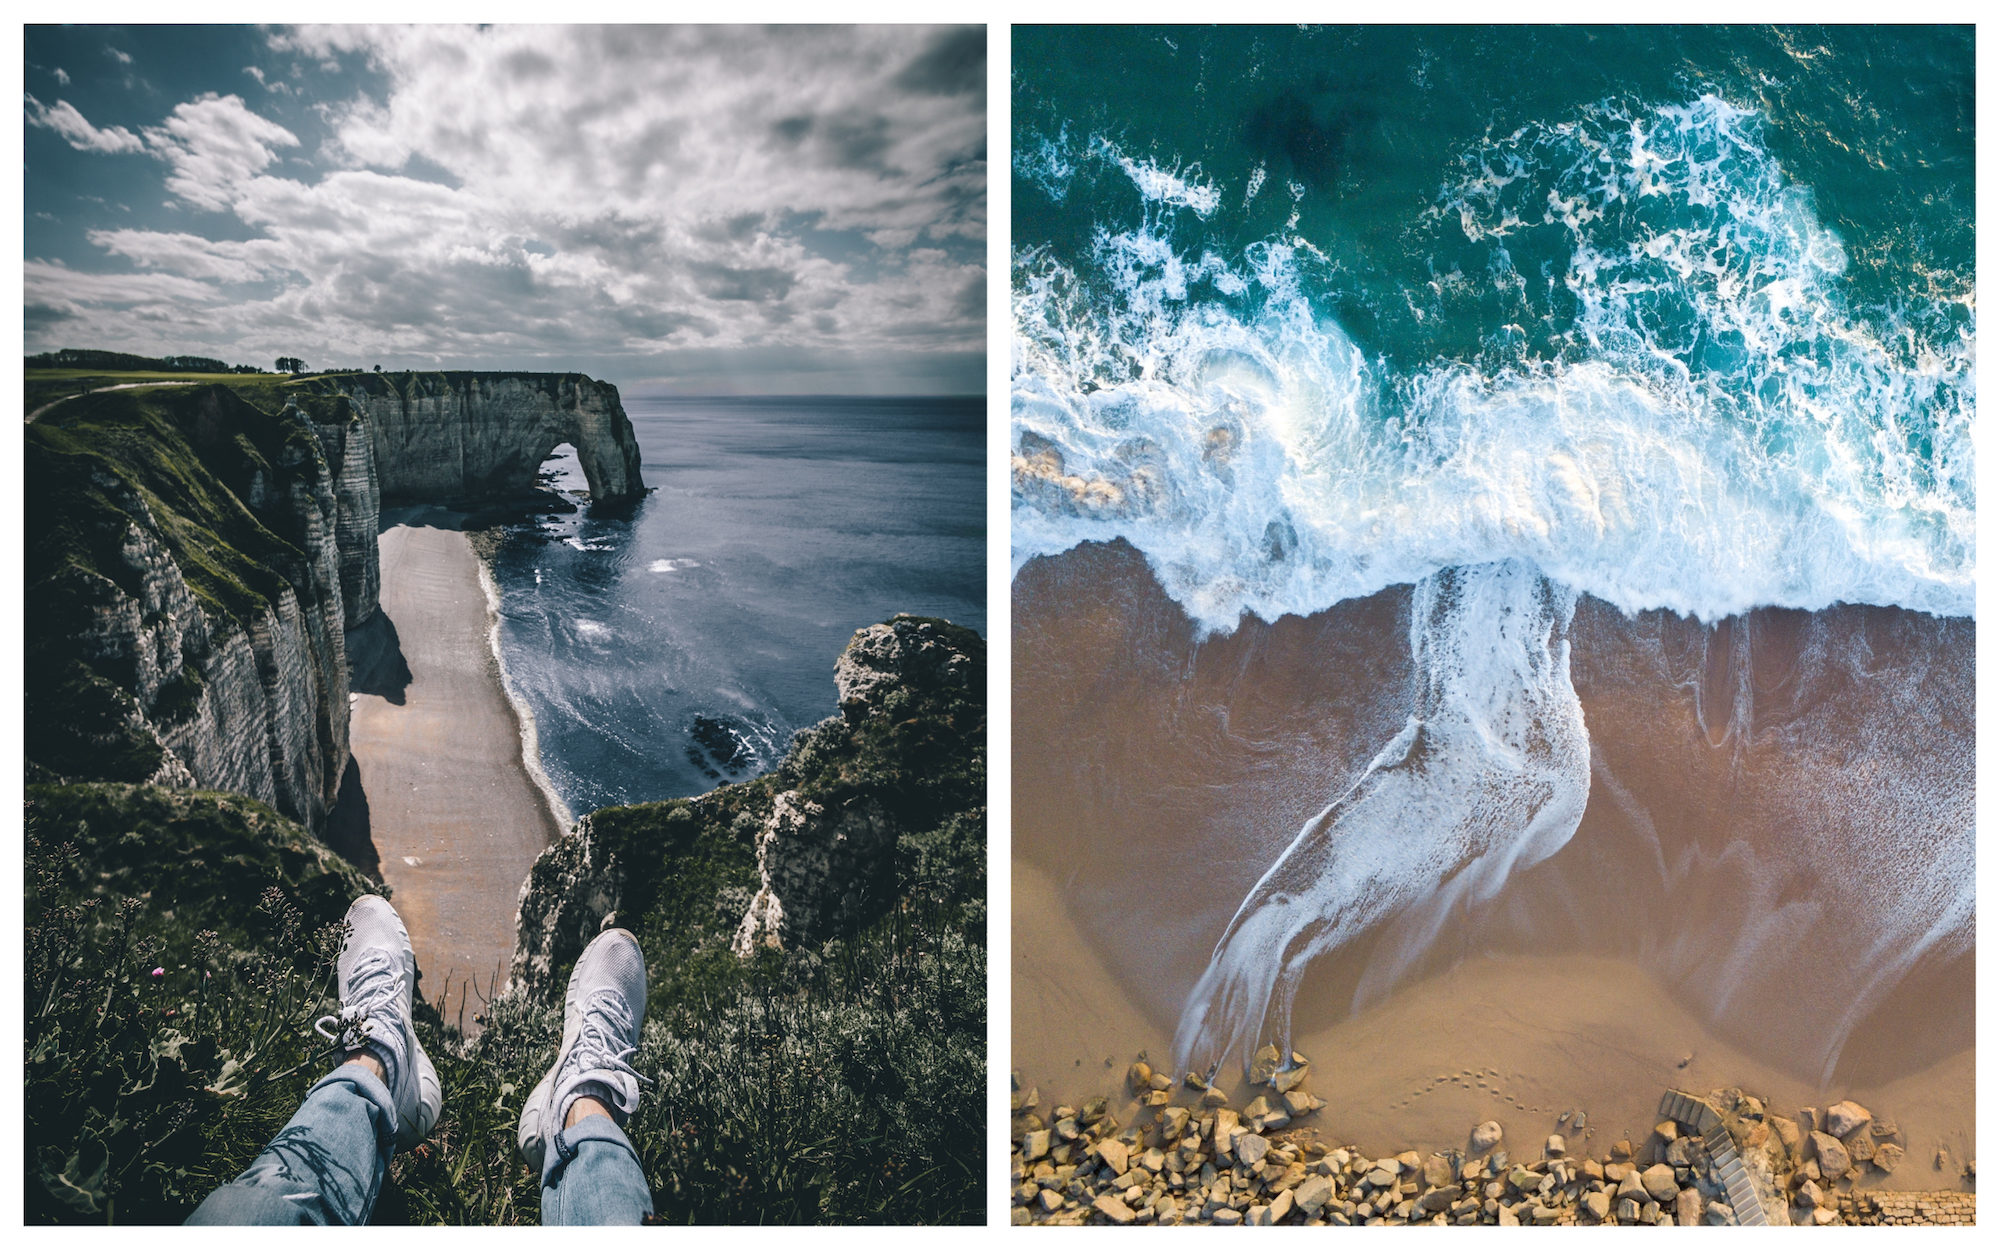 Legs resting on top of a cliff, facing Etretat and its beach in Normandy, France, in summer (left). Looking down at a sandy beach and turquoise waters (right).